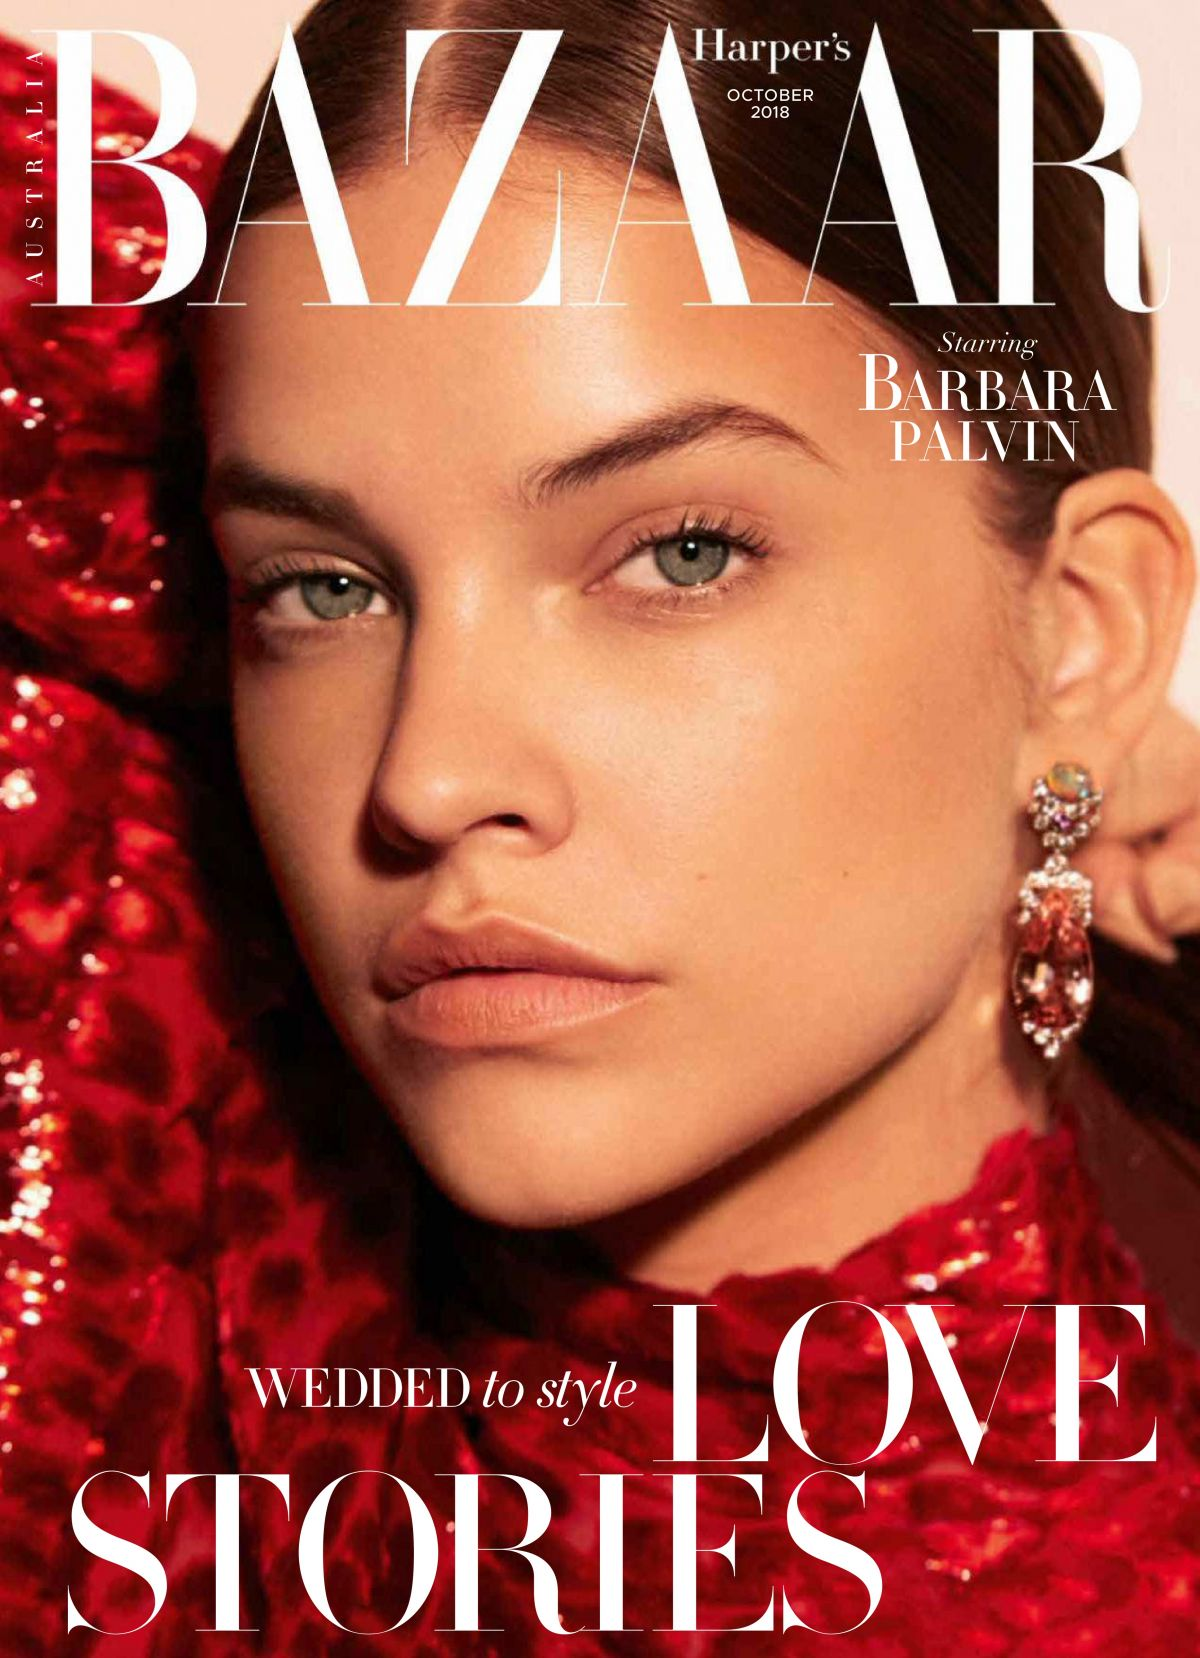 barbara-palvin-in-harper-s-bazaar-magazine-australia-october-2018-12.jpg